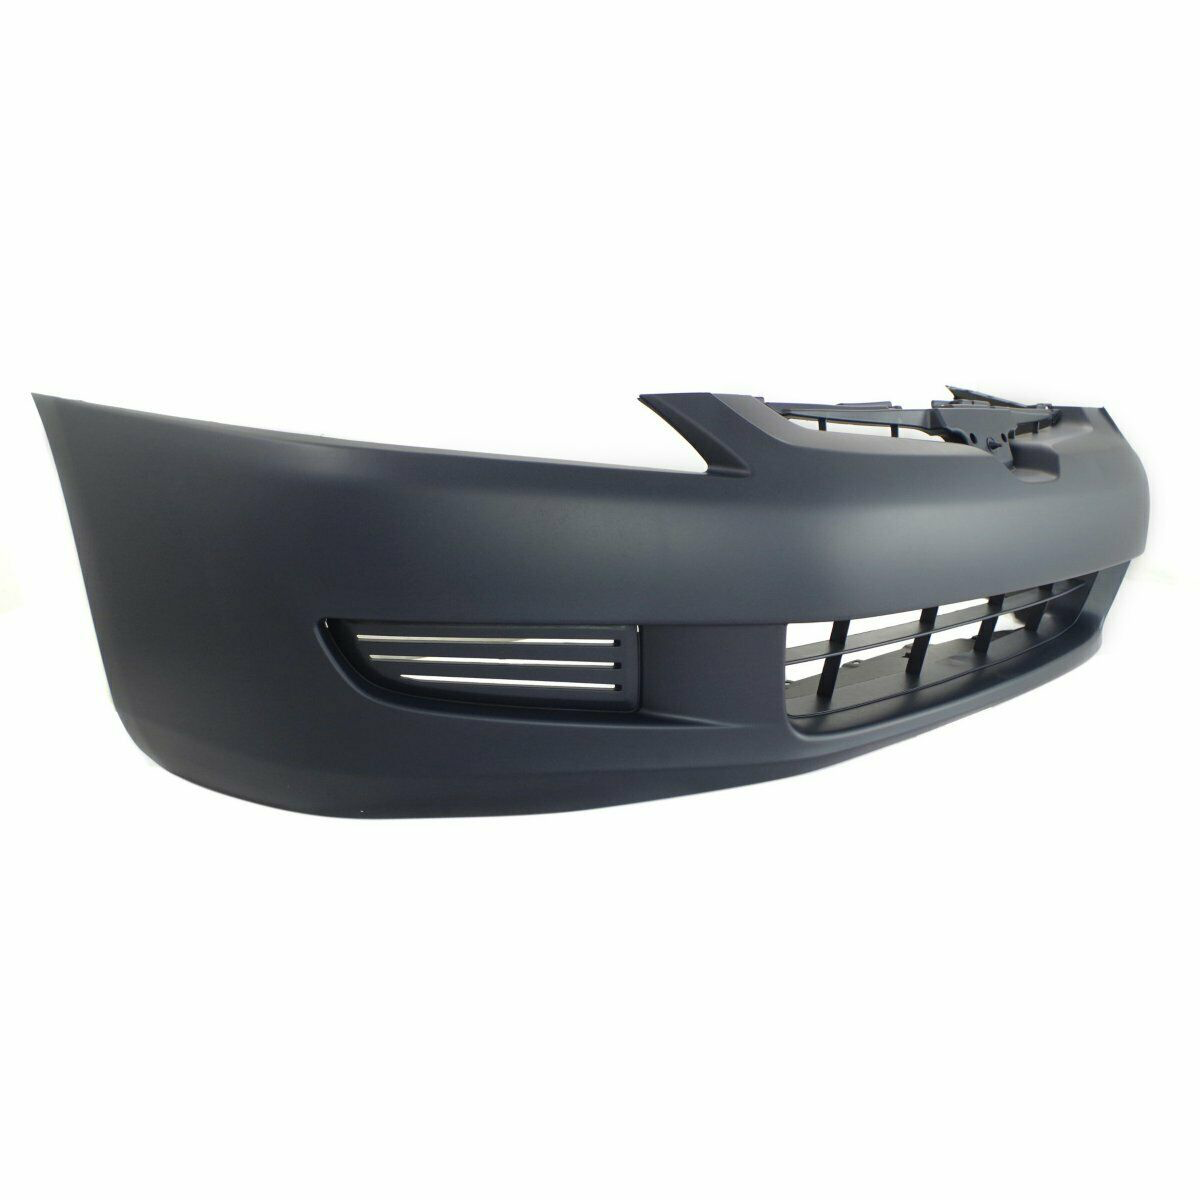 2003-2005 Honda Accord Coupe Front Bumper Painted to Match